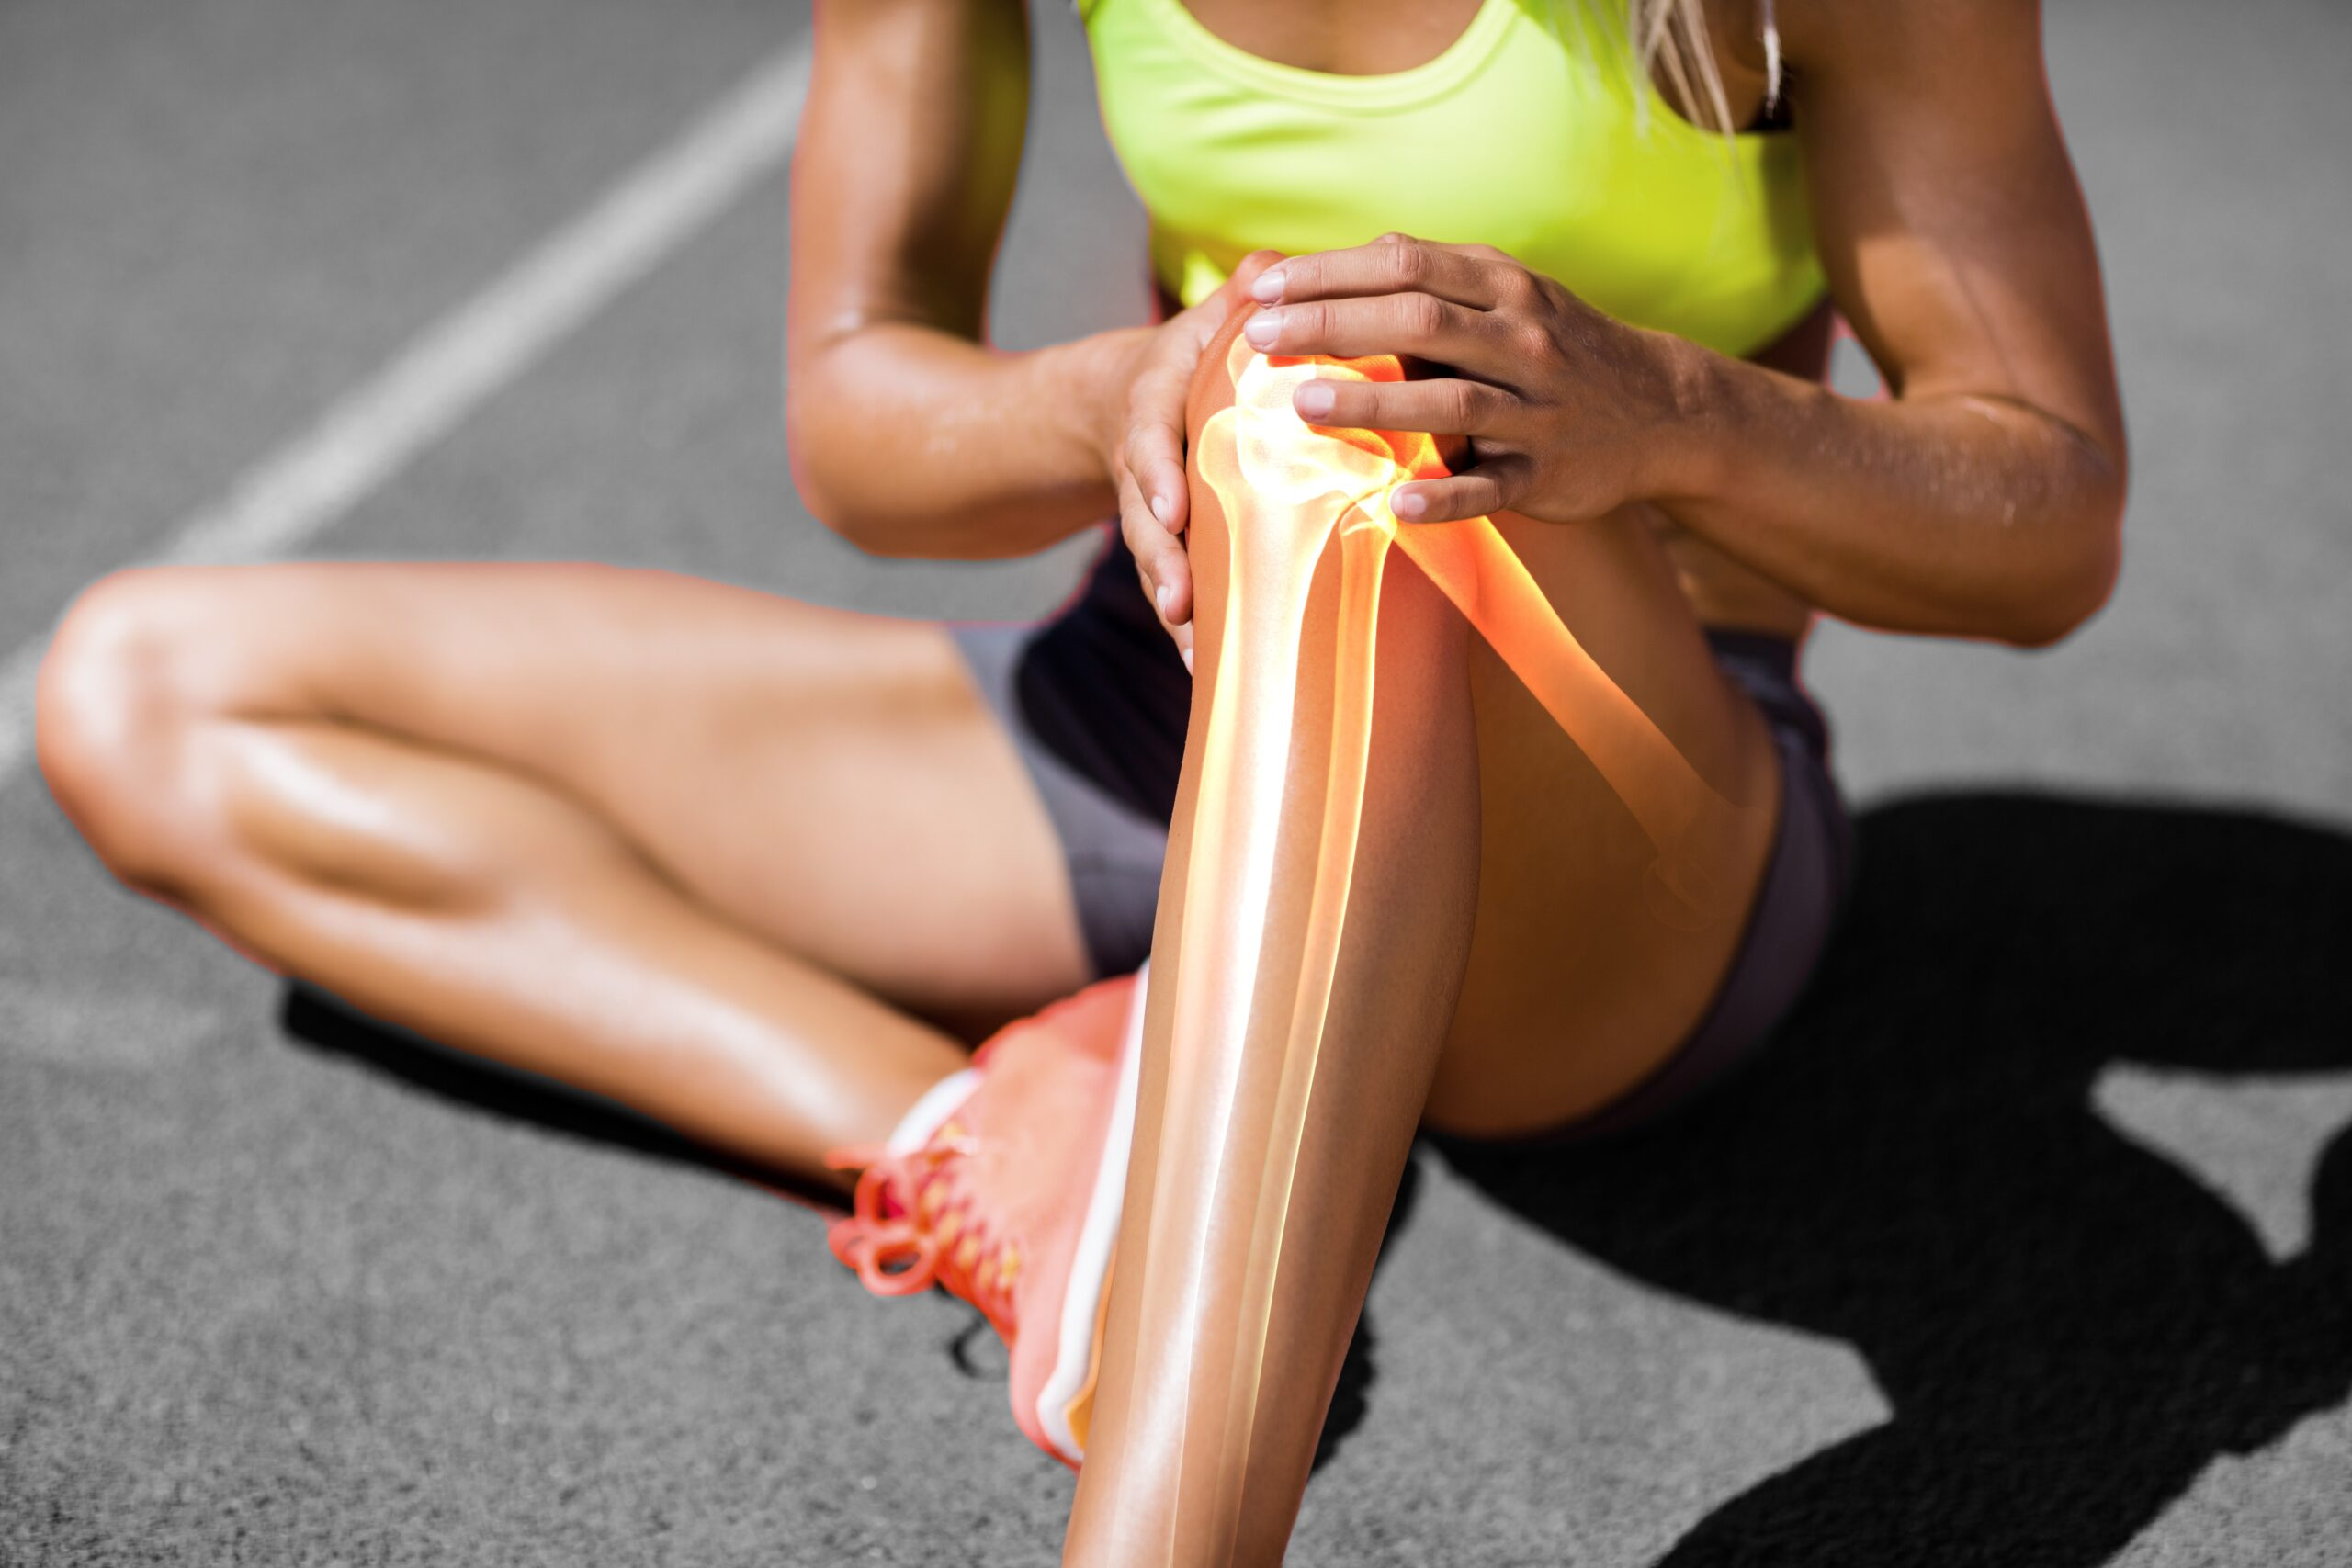 ISN'T IT SWELL? CAN CBD ALLEVIATE JOINT PAIN?